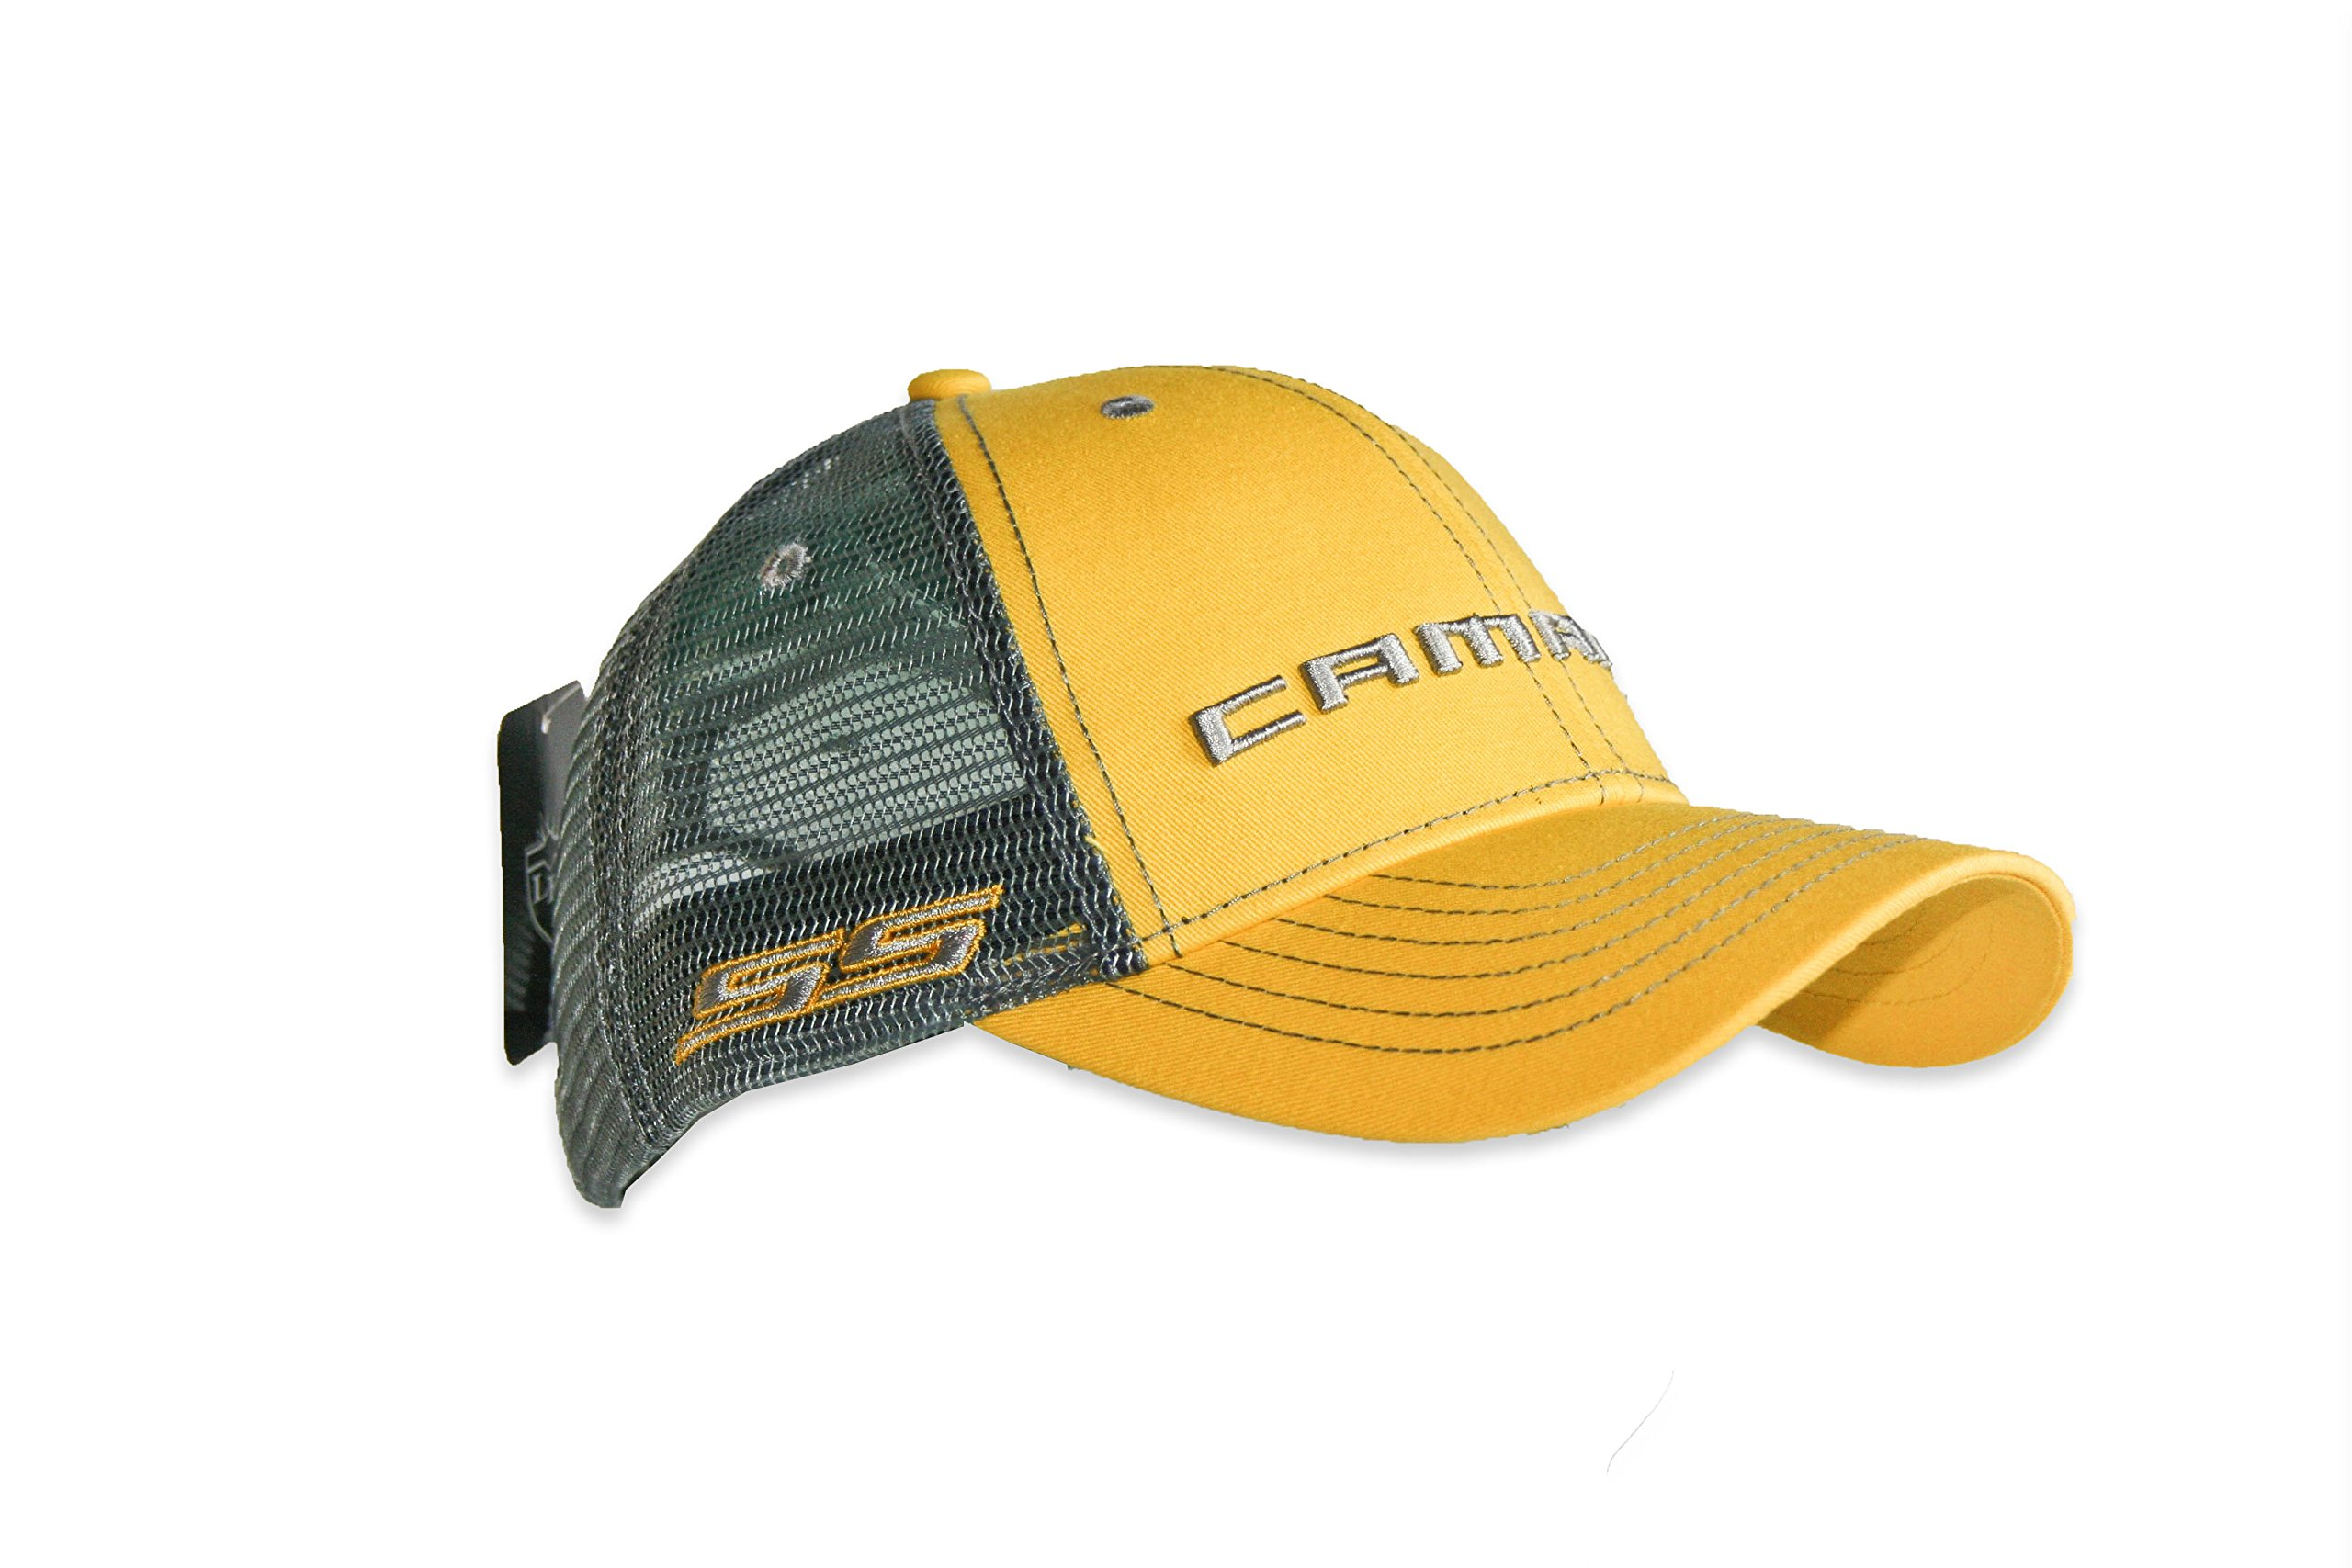 Chevrolet Yellow Trucker Hat